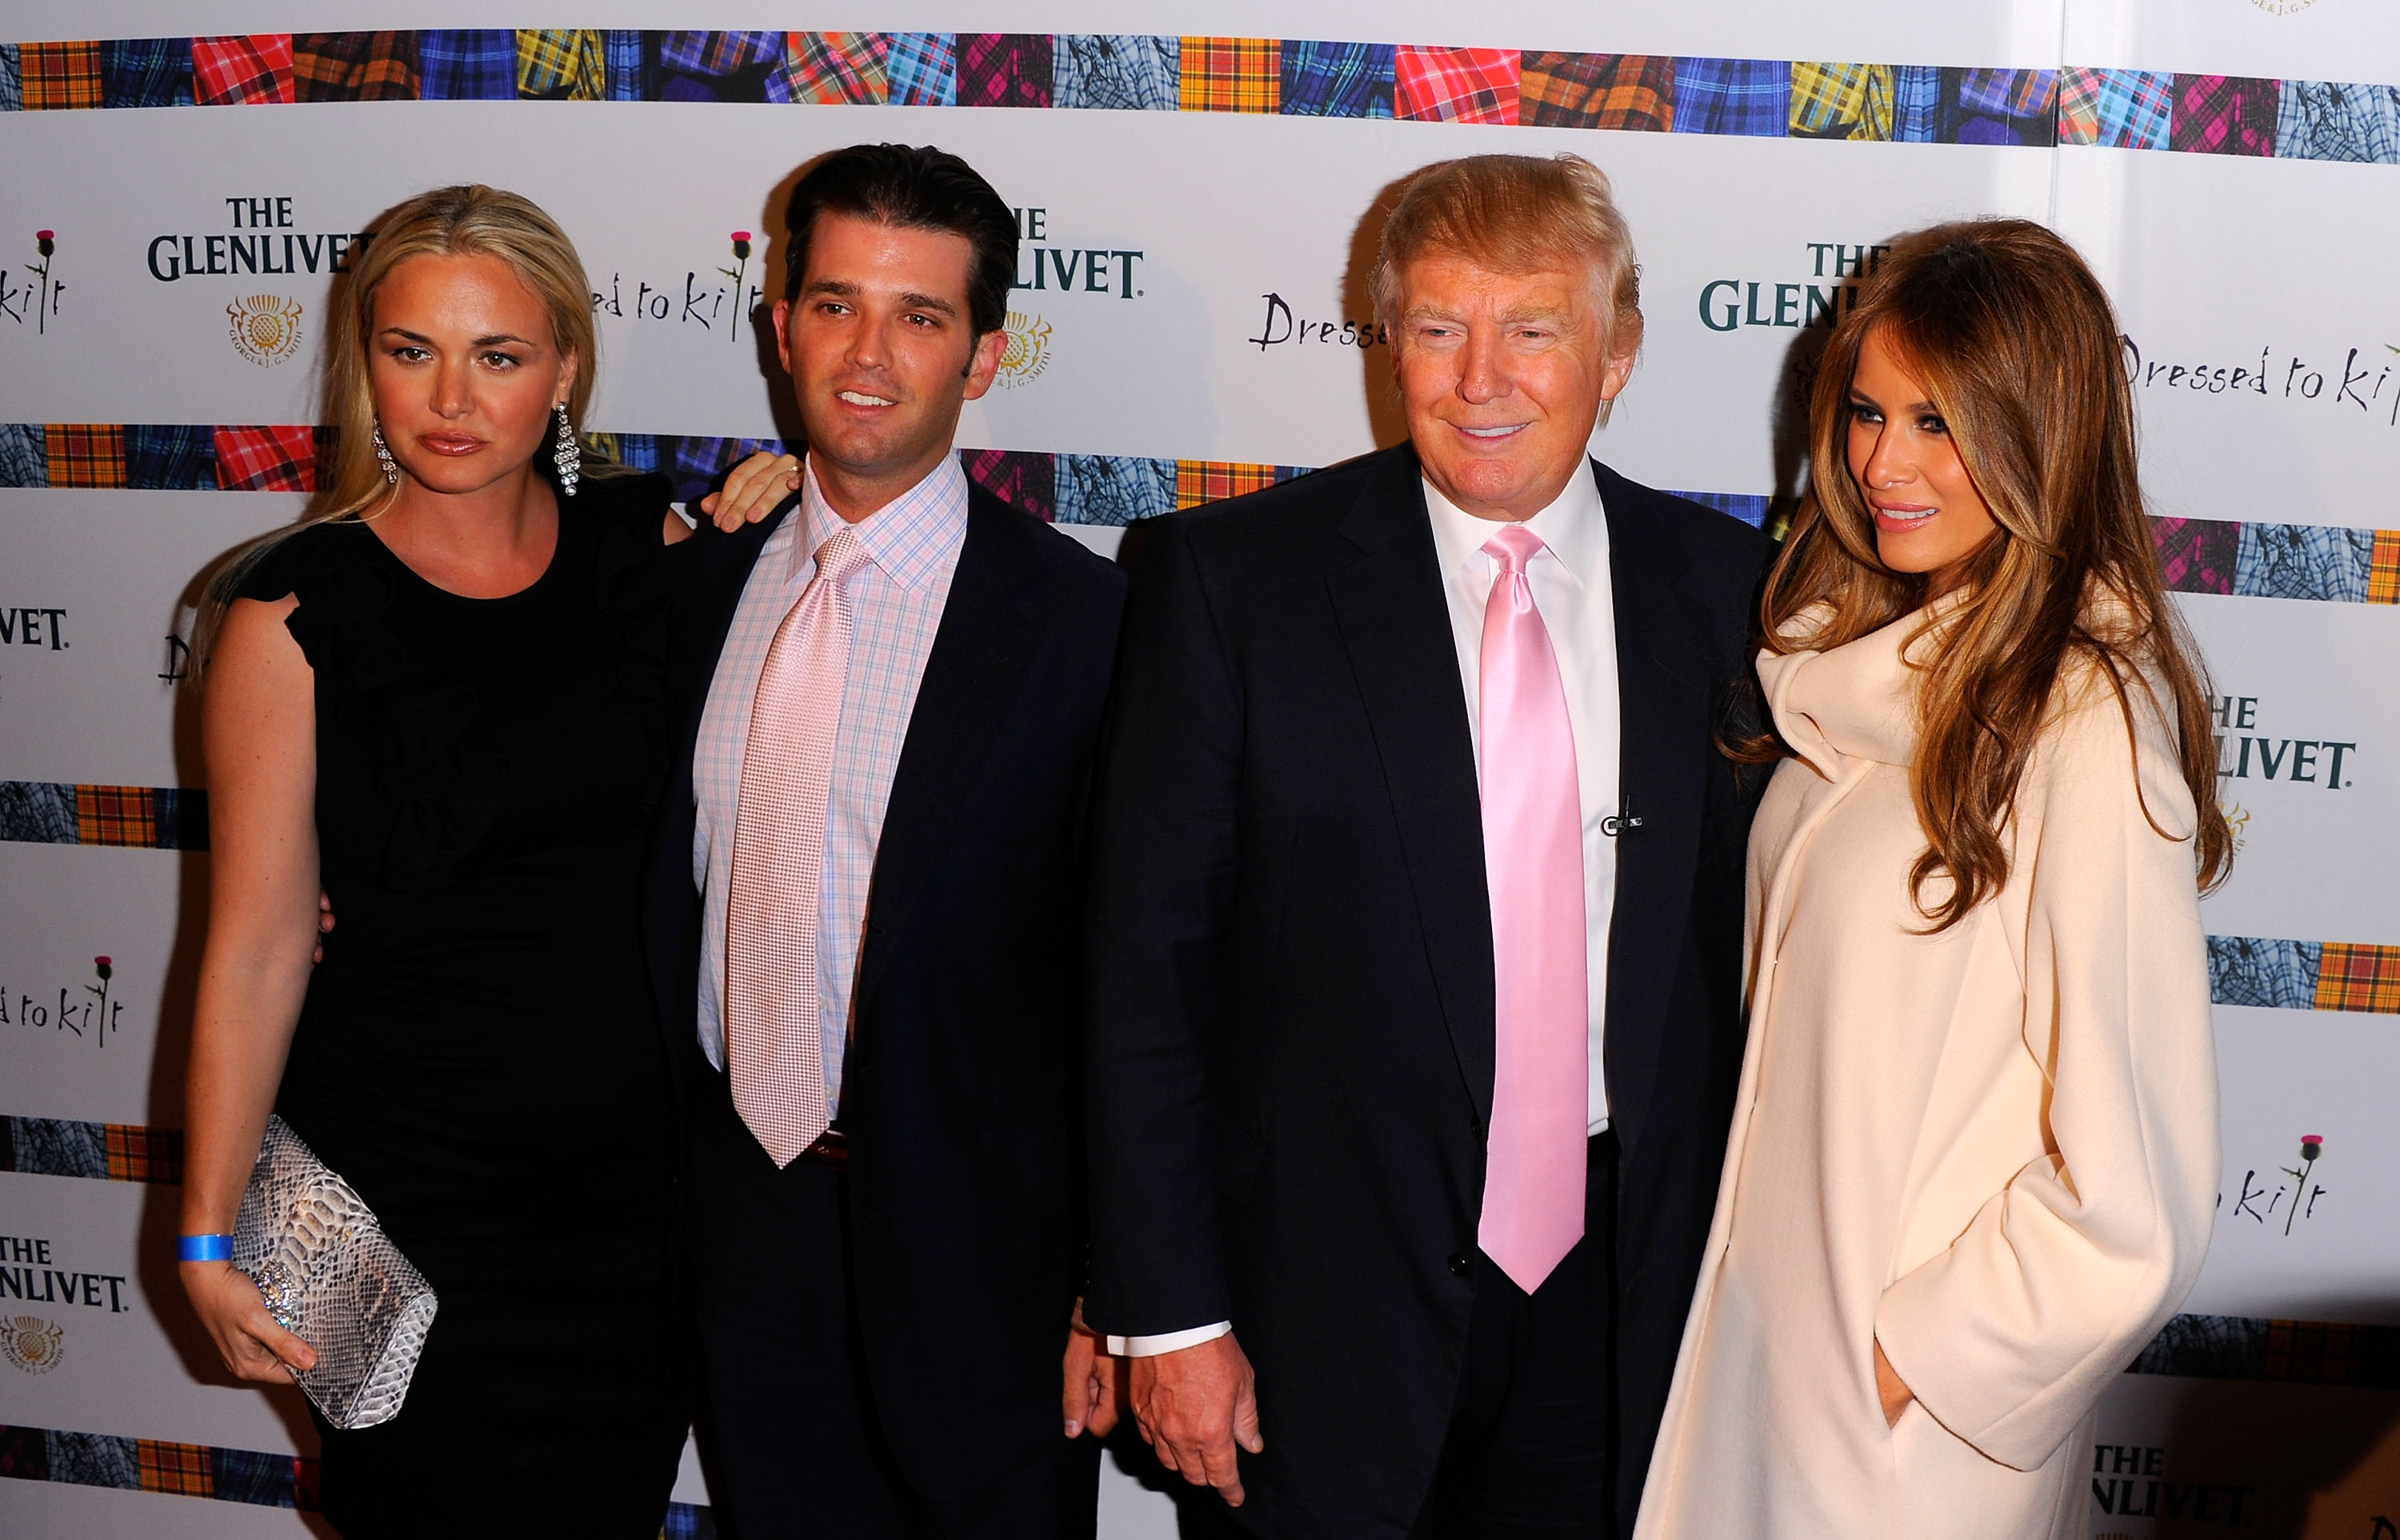 Donald Trump Sr. Told Donald Jr. to 'Knock Off' Alleged Affair